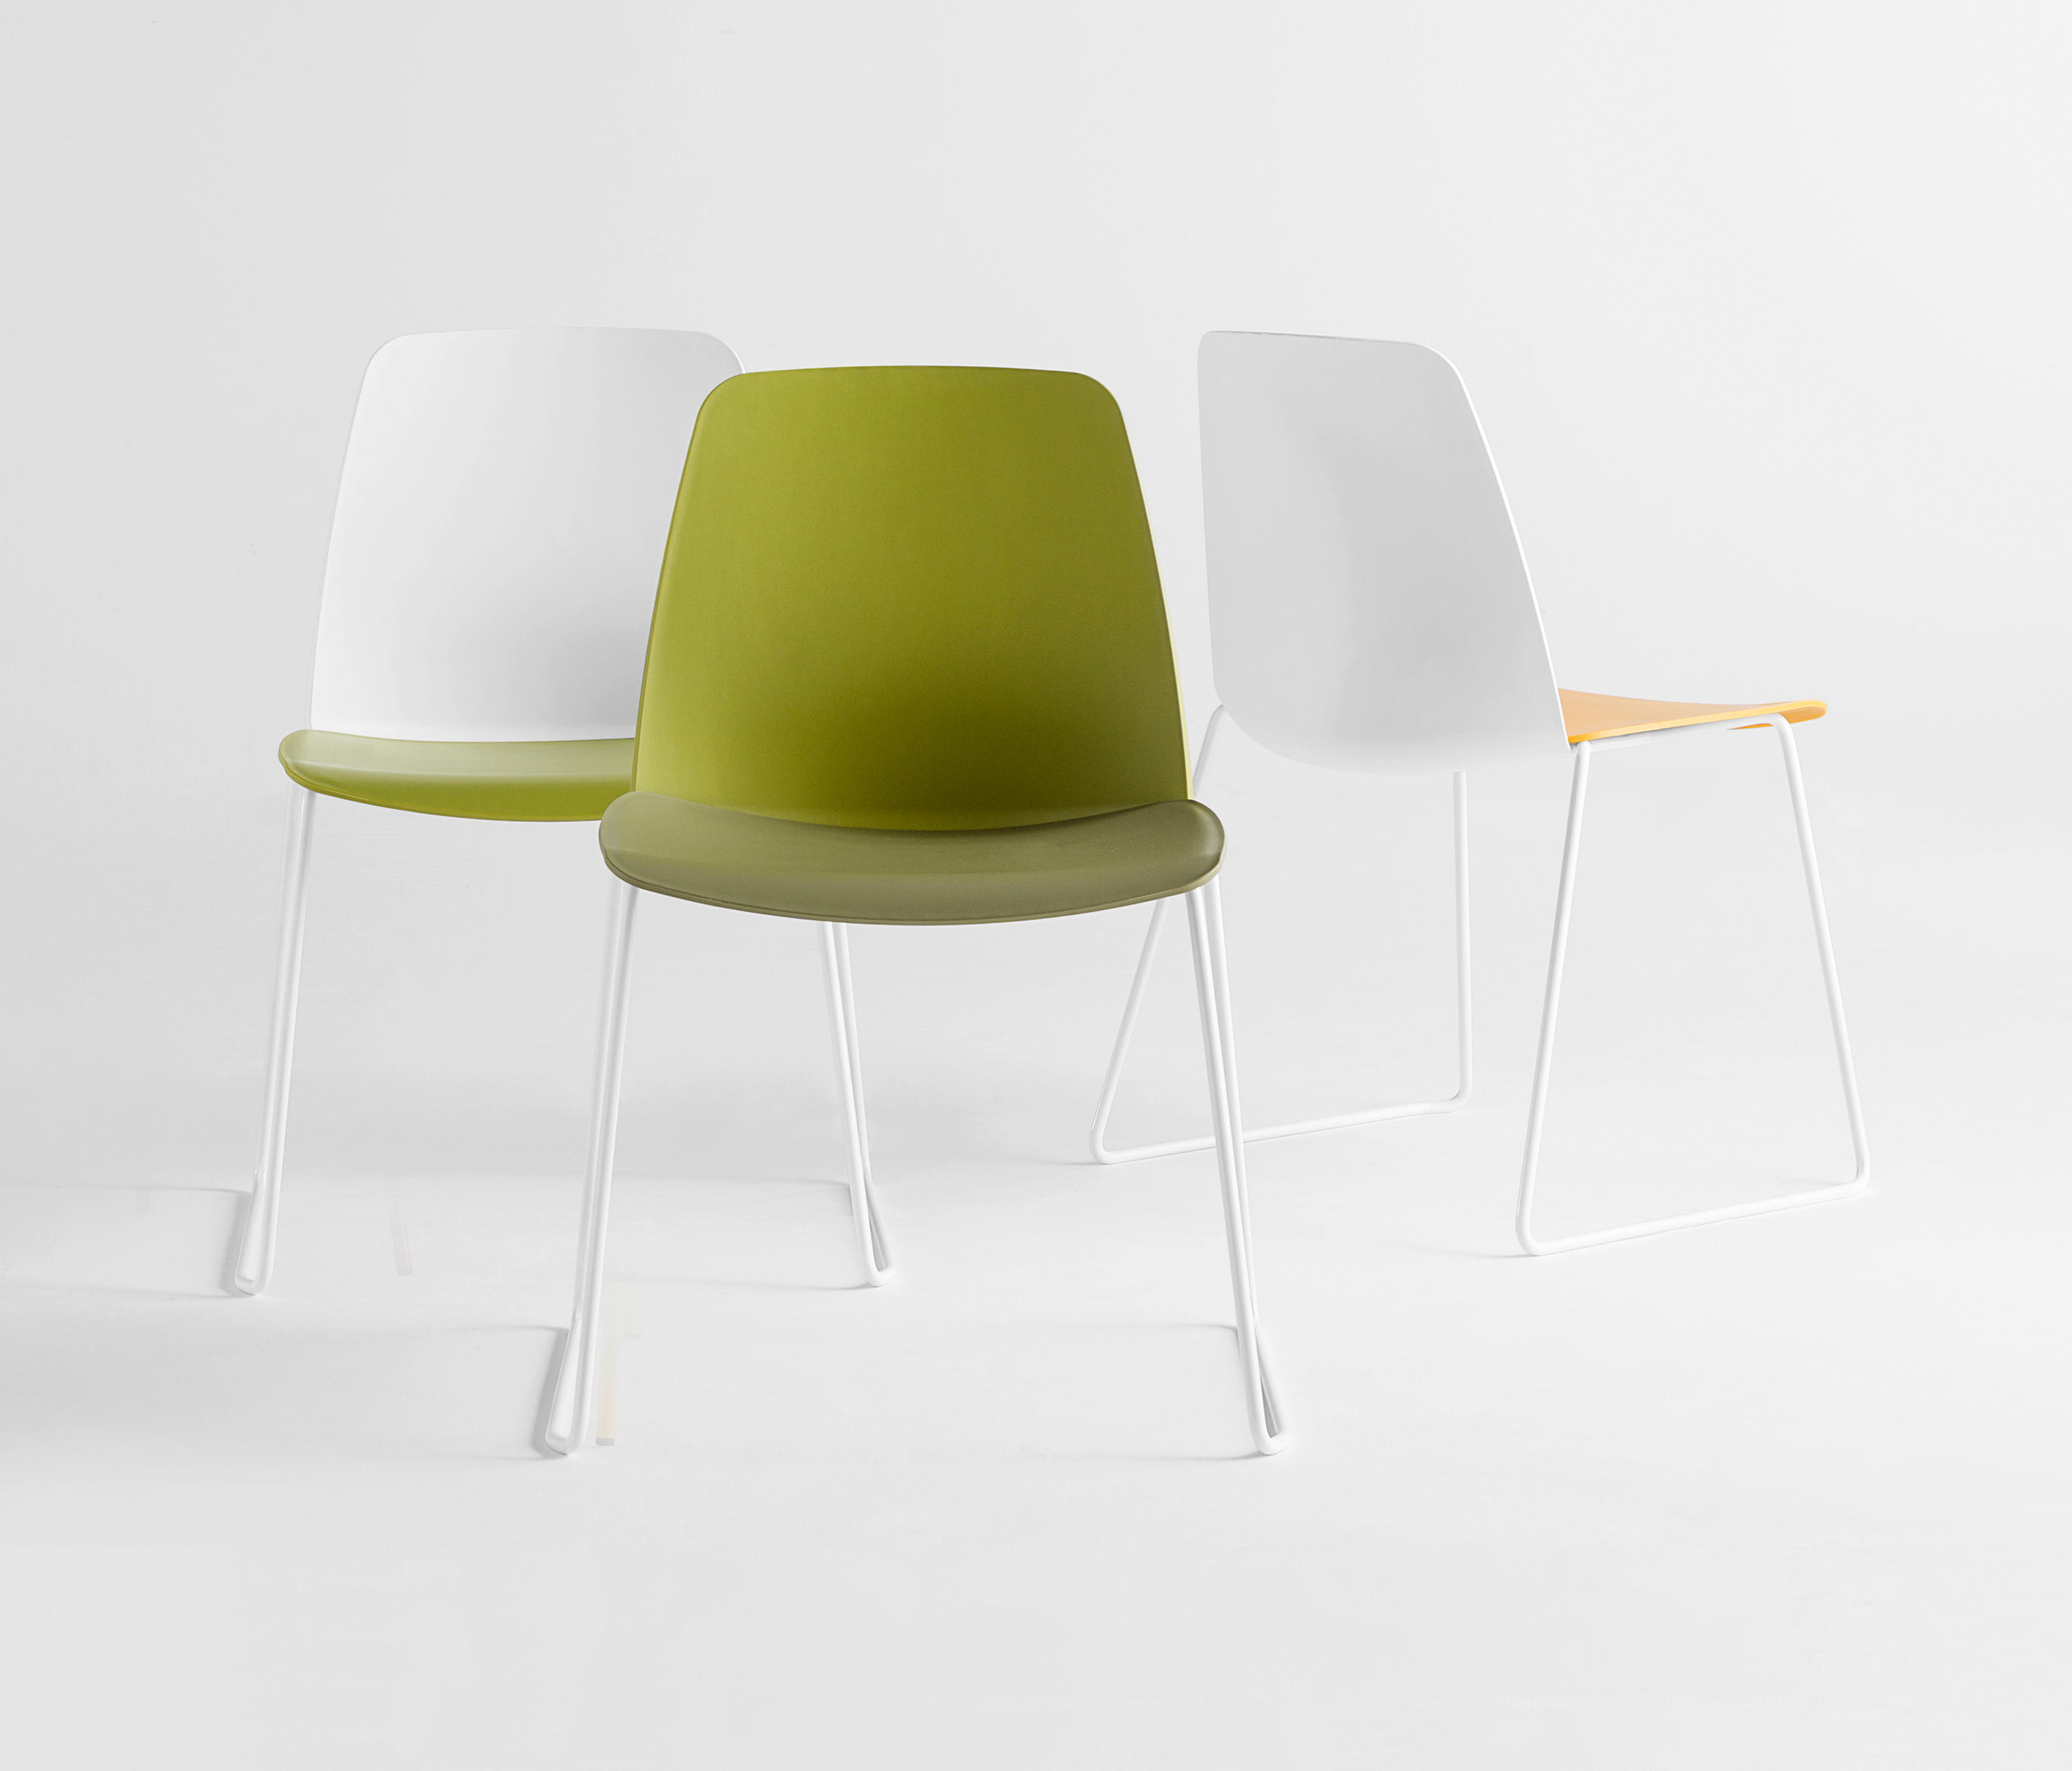 Unnia task chairs from inclass architonic for Silla unnia inclass